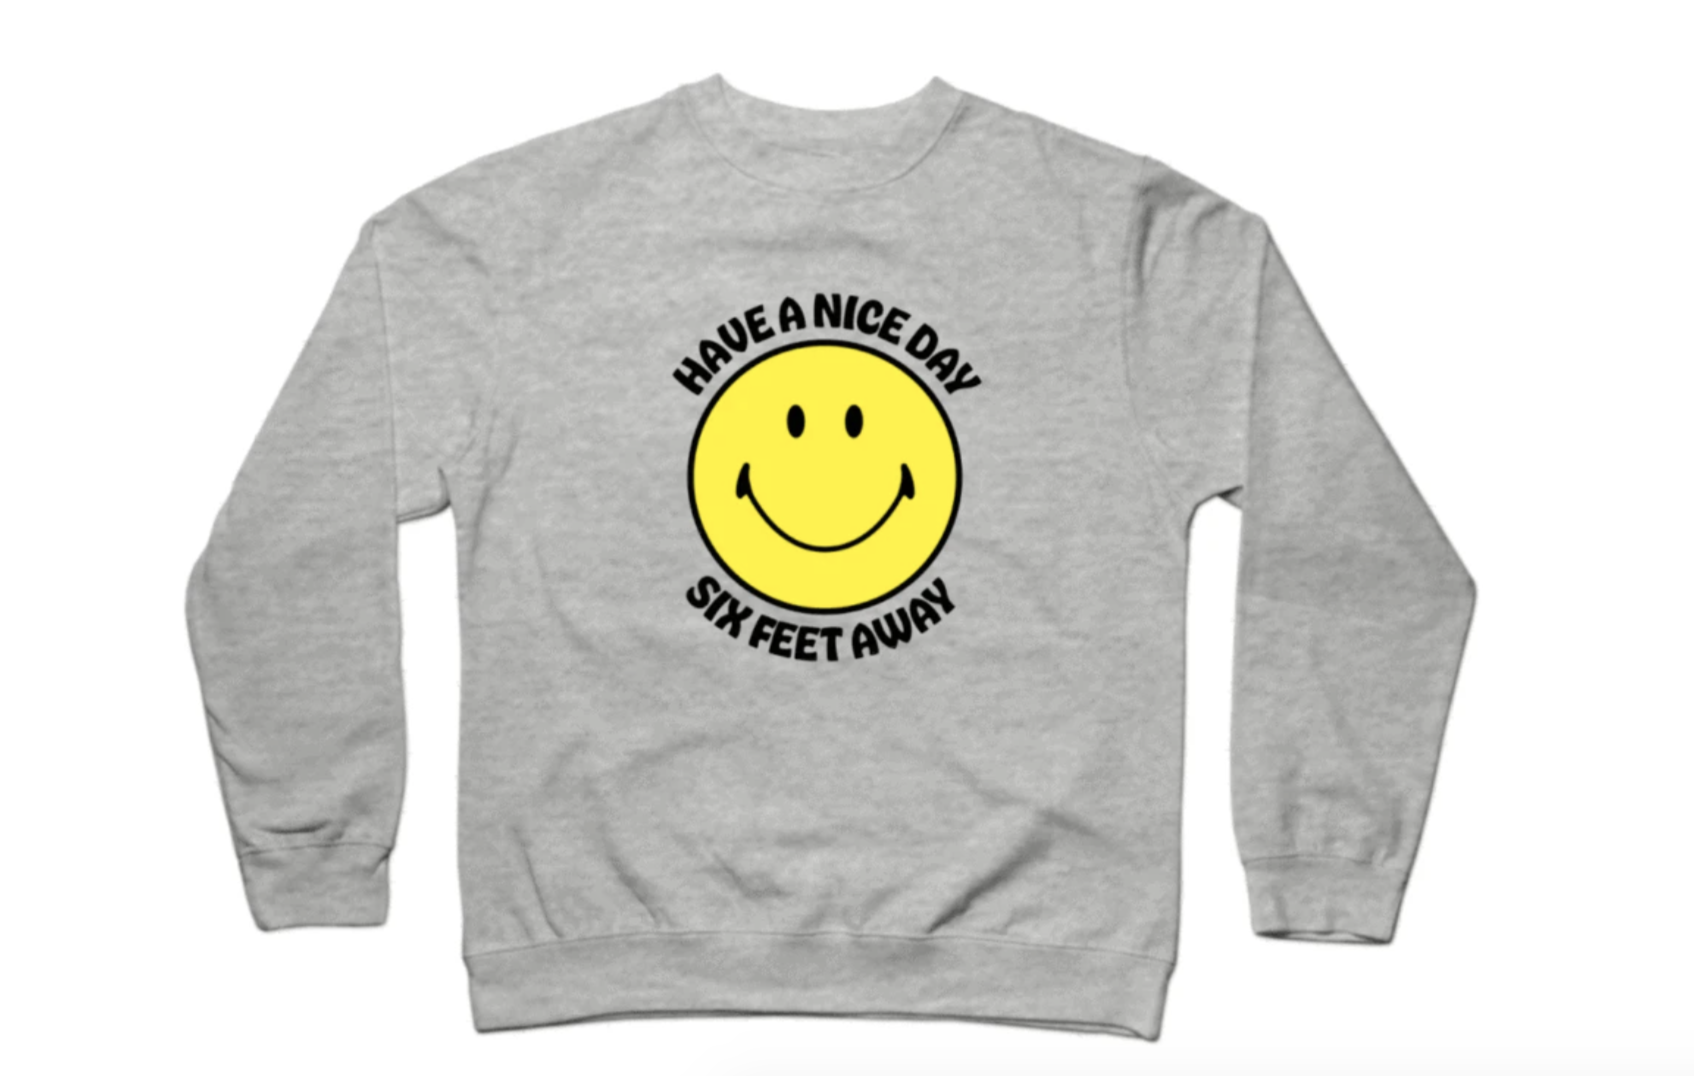 """sweater with happy face and text that says """"have a nice day six feet away"""""""